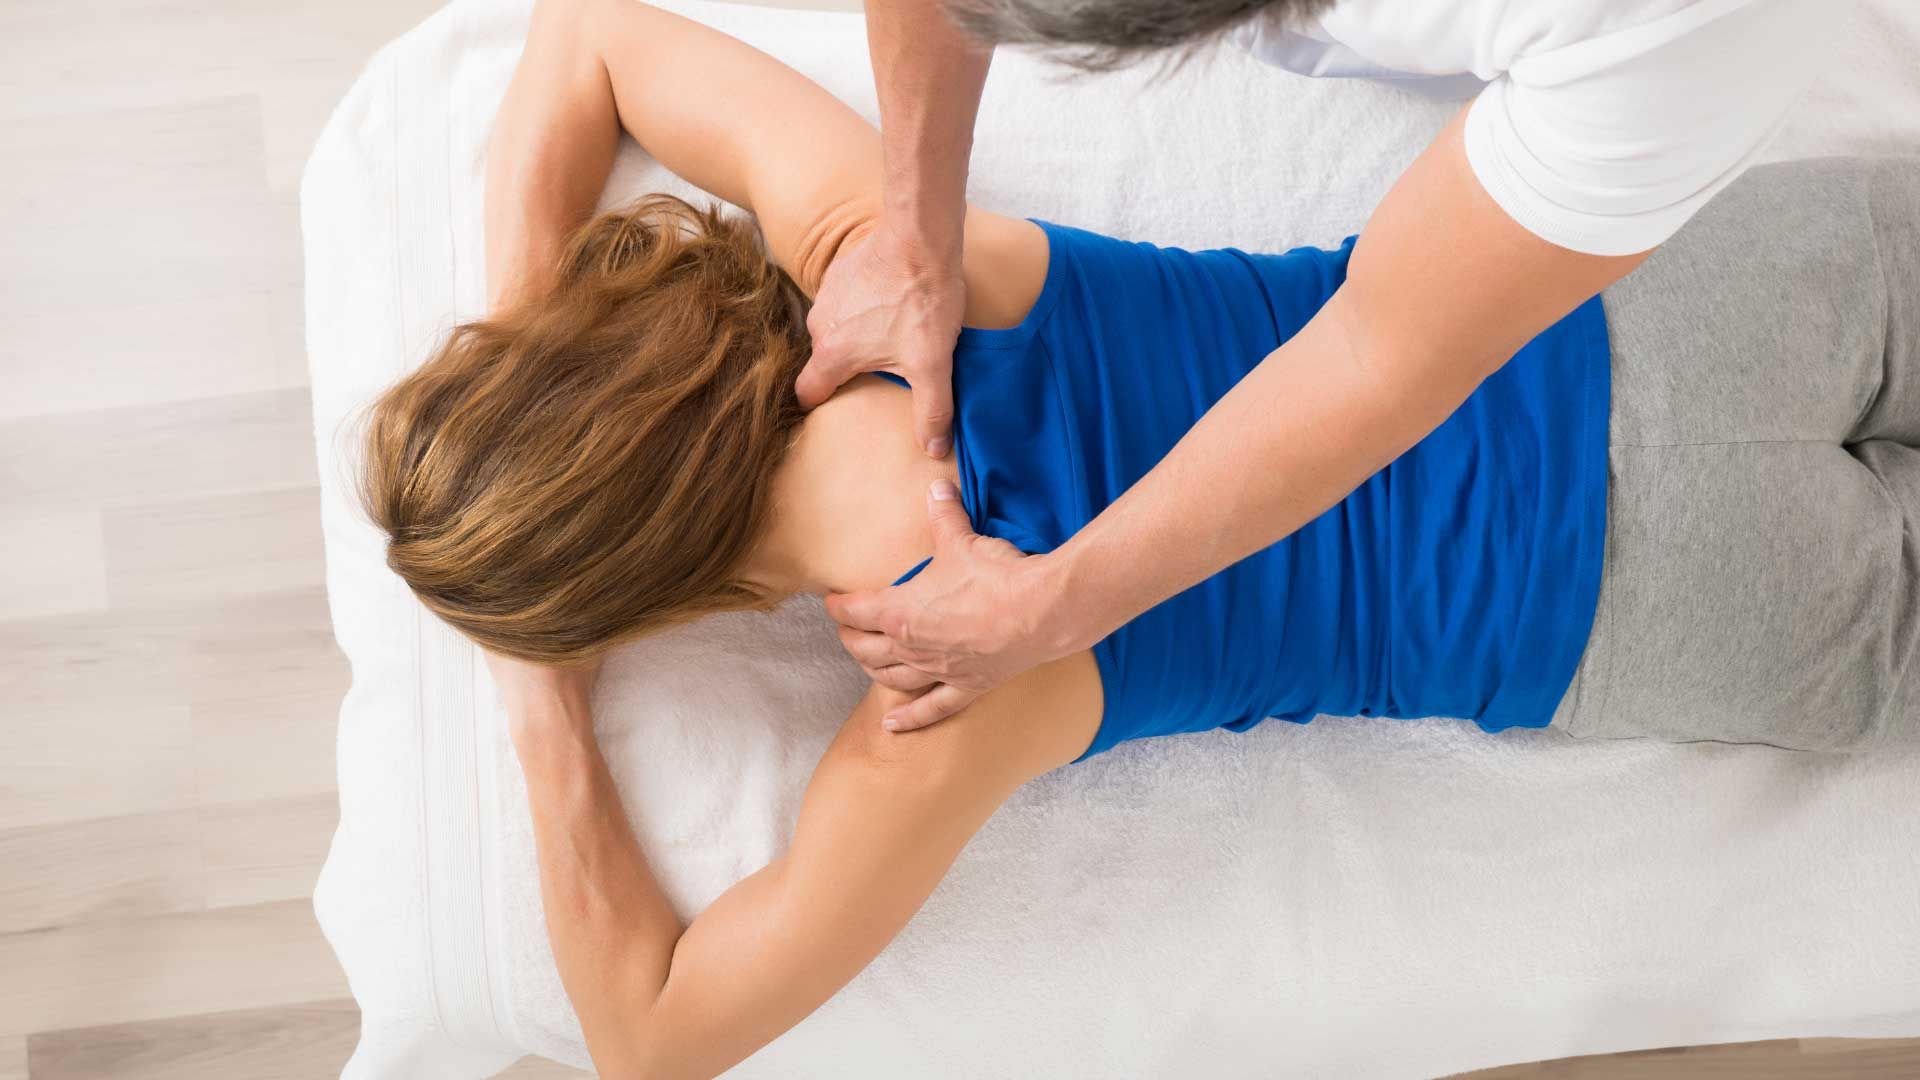 A woman on a massage table receiving a therapy